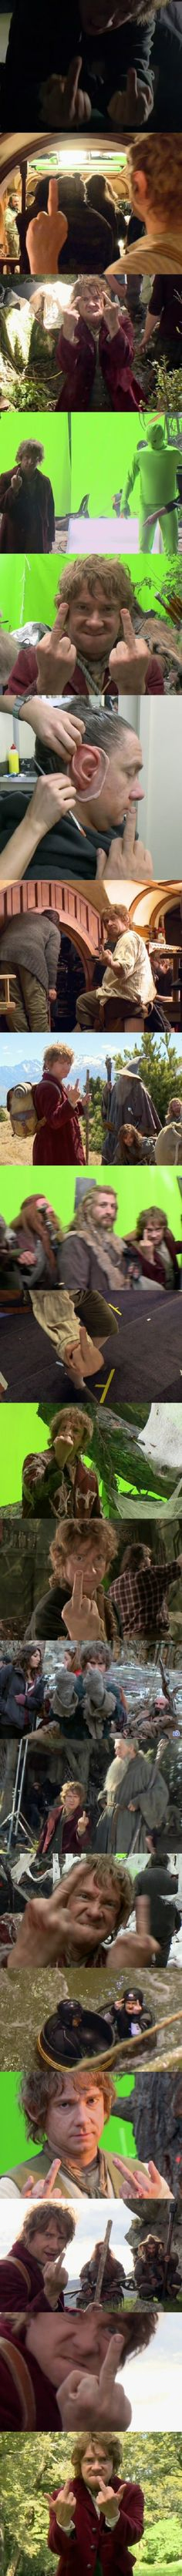 Bilbo. Motherf**king. Baggins. // funny pictures - funny photos - funny images - funny pics - funny quotes - #lol #humor #funnypictures